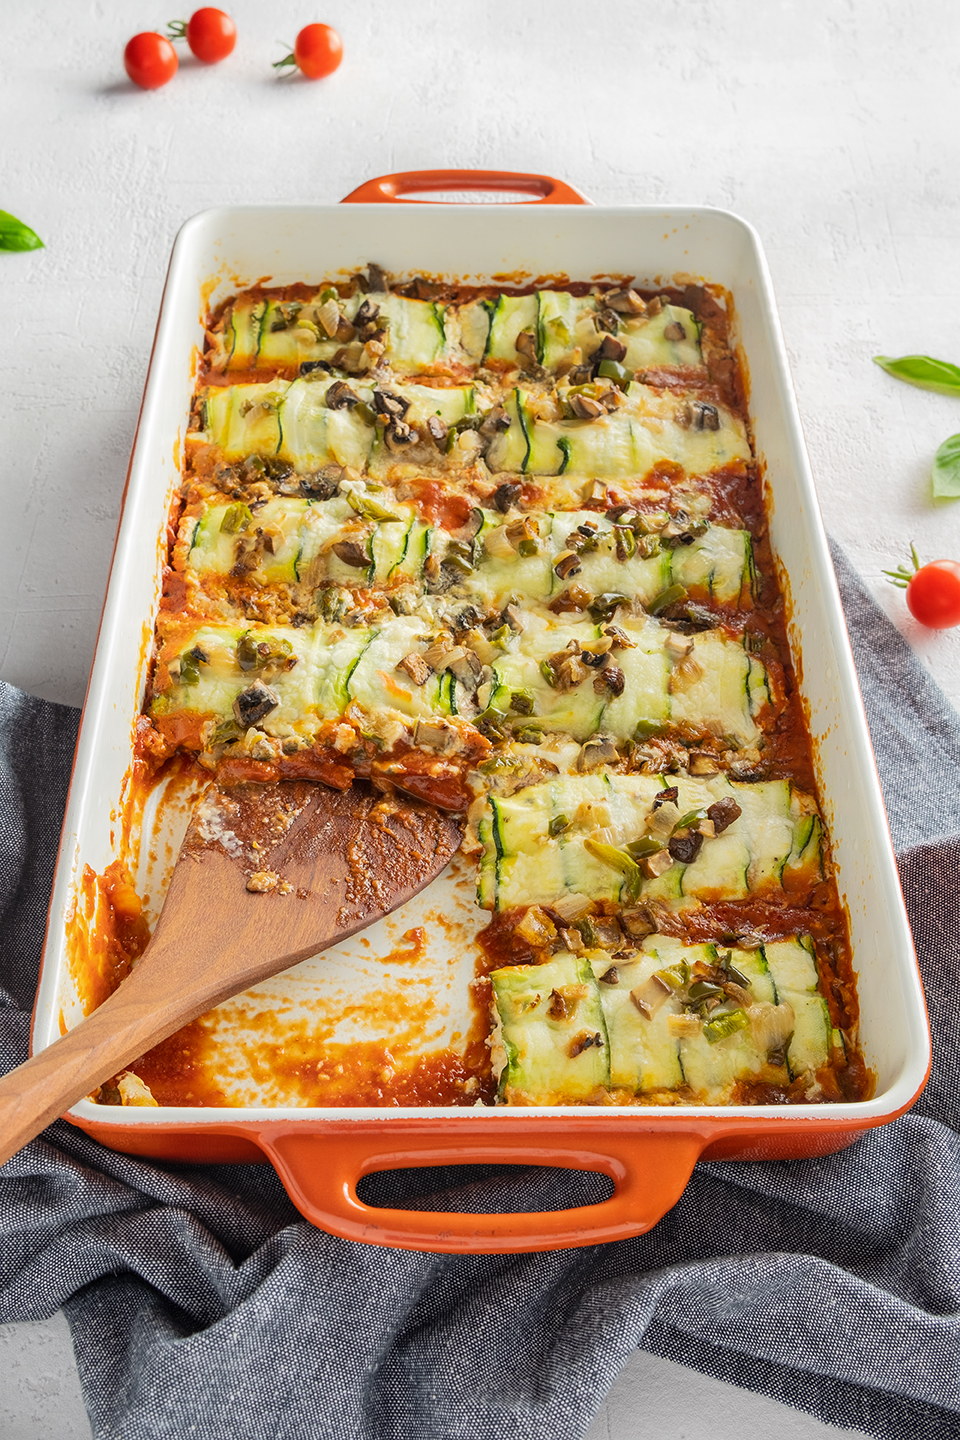 Low carb zucchini and ricotta cannelloni in a orange baking dish.  Cherry tomatoes, basil and blue napkin on a white background.